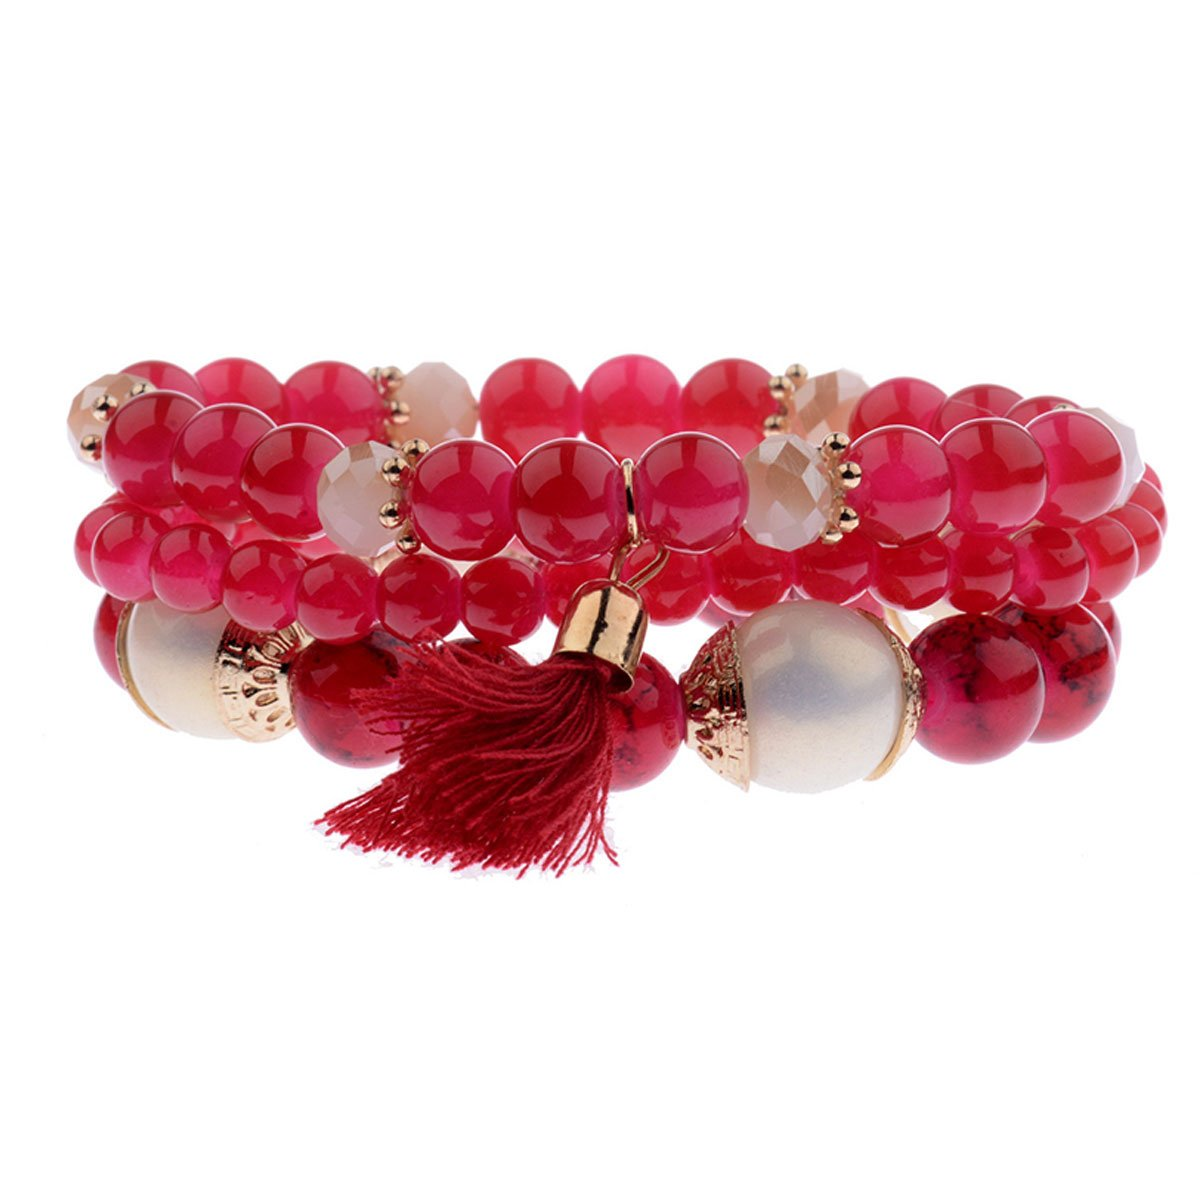 GVUSMIL Spring Summer Fashion Women's Bracelet Set 3Pcs/Lot Charm Beads Bracelet Jewelry For Ladies (Red, Natural stone)